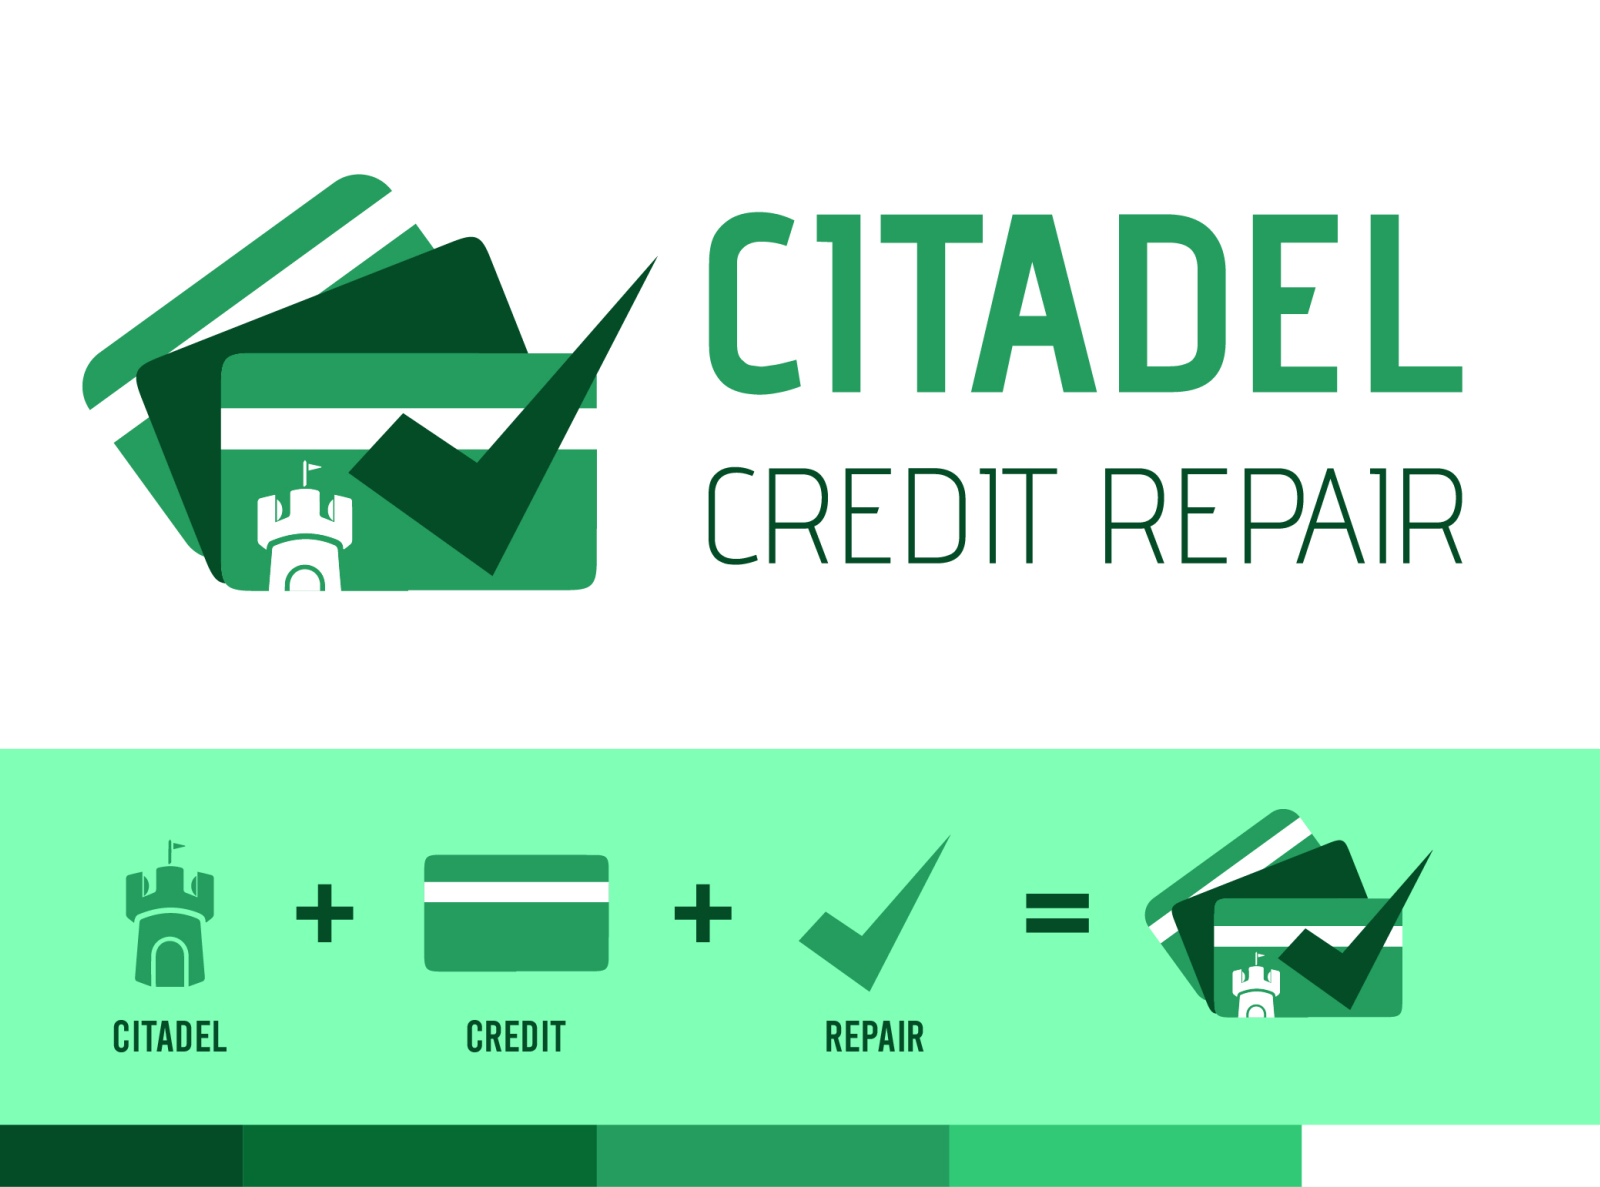 Citadel Credit Repair Logo Design By Impressions By Tayyab On Dribbble